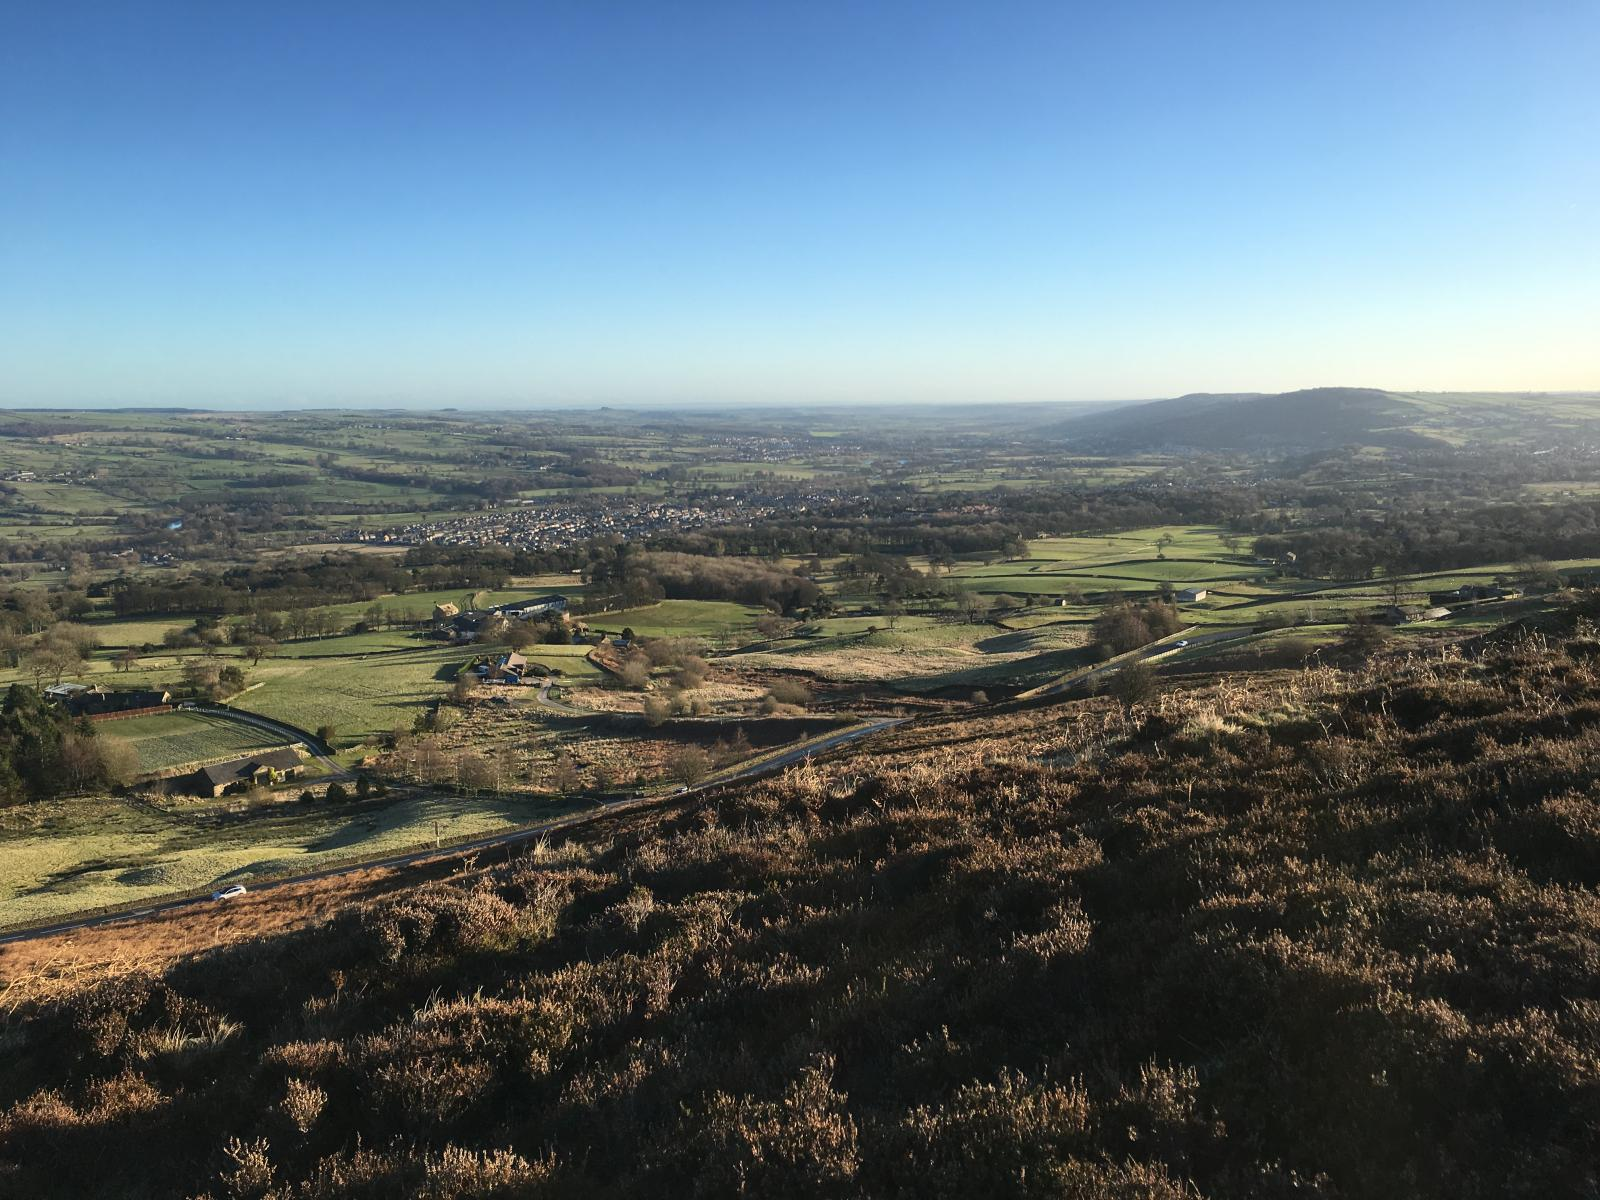 View over Ilkley Moor to the River Wharfe. Credit: James Woodward